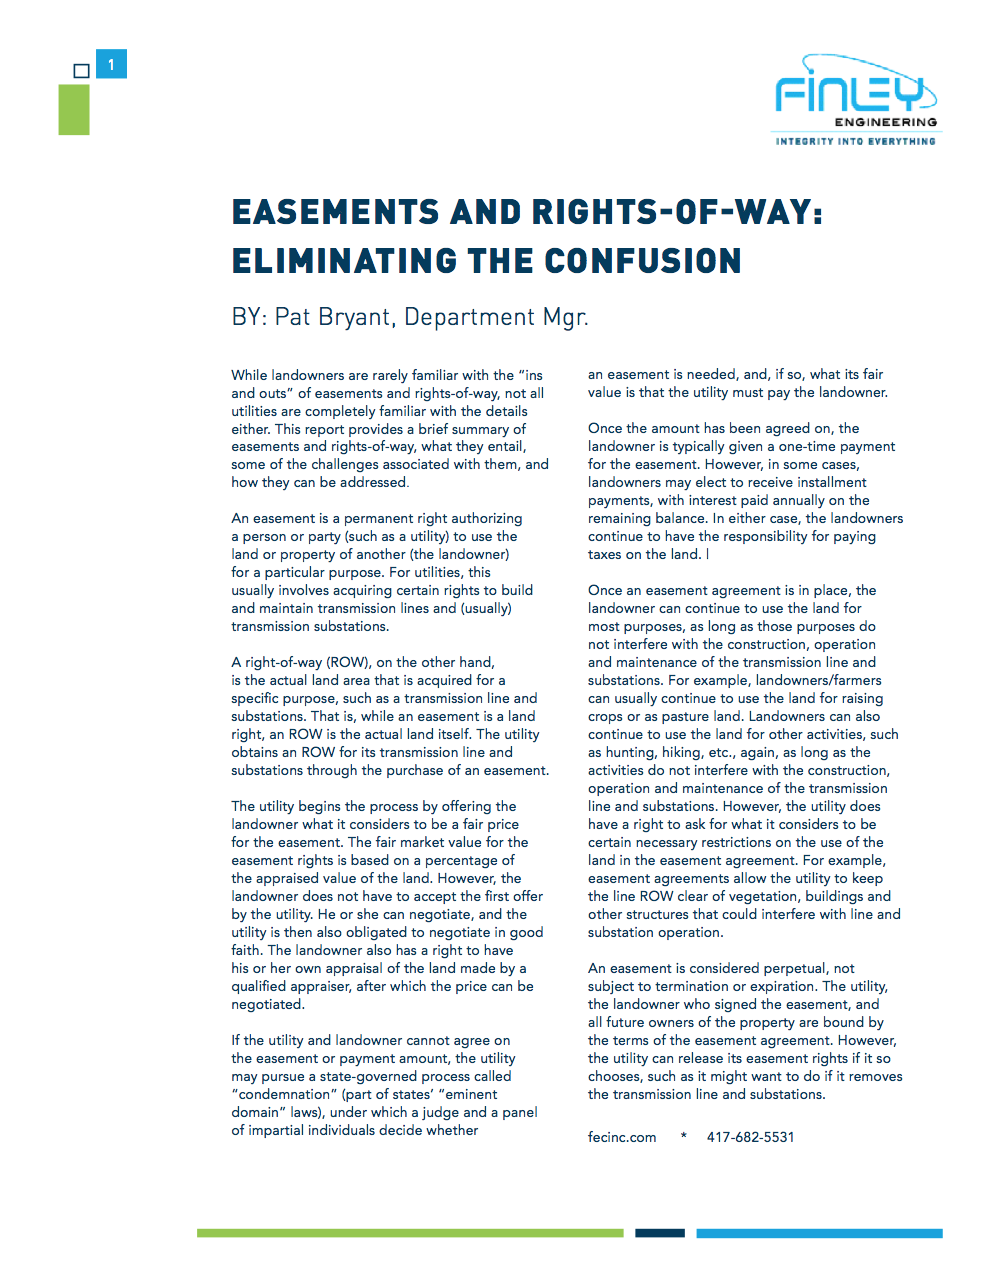 Energy Whitepaper Easements And Rights Of Way